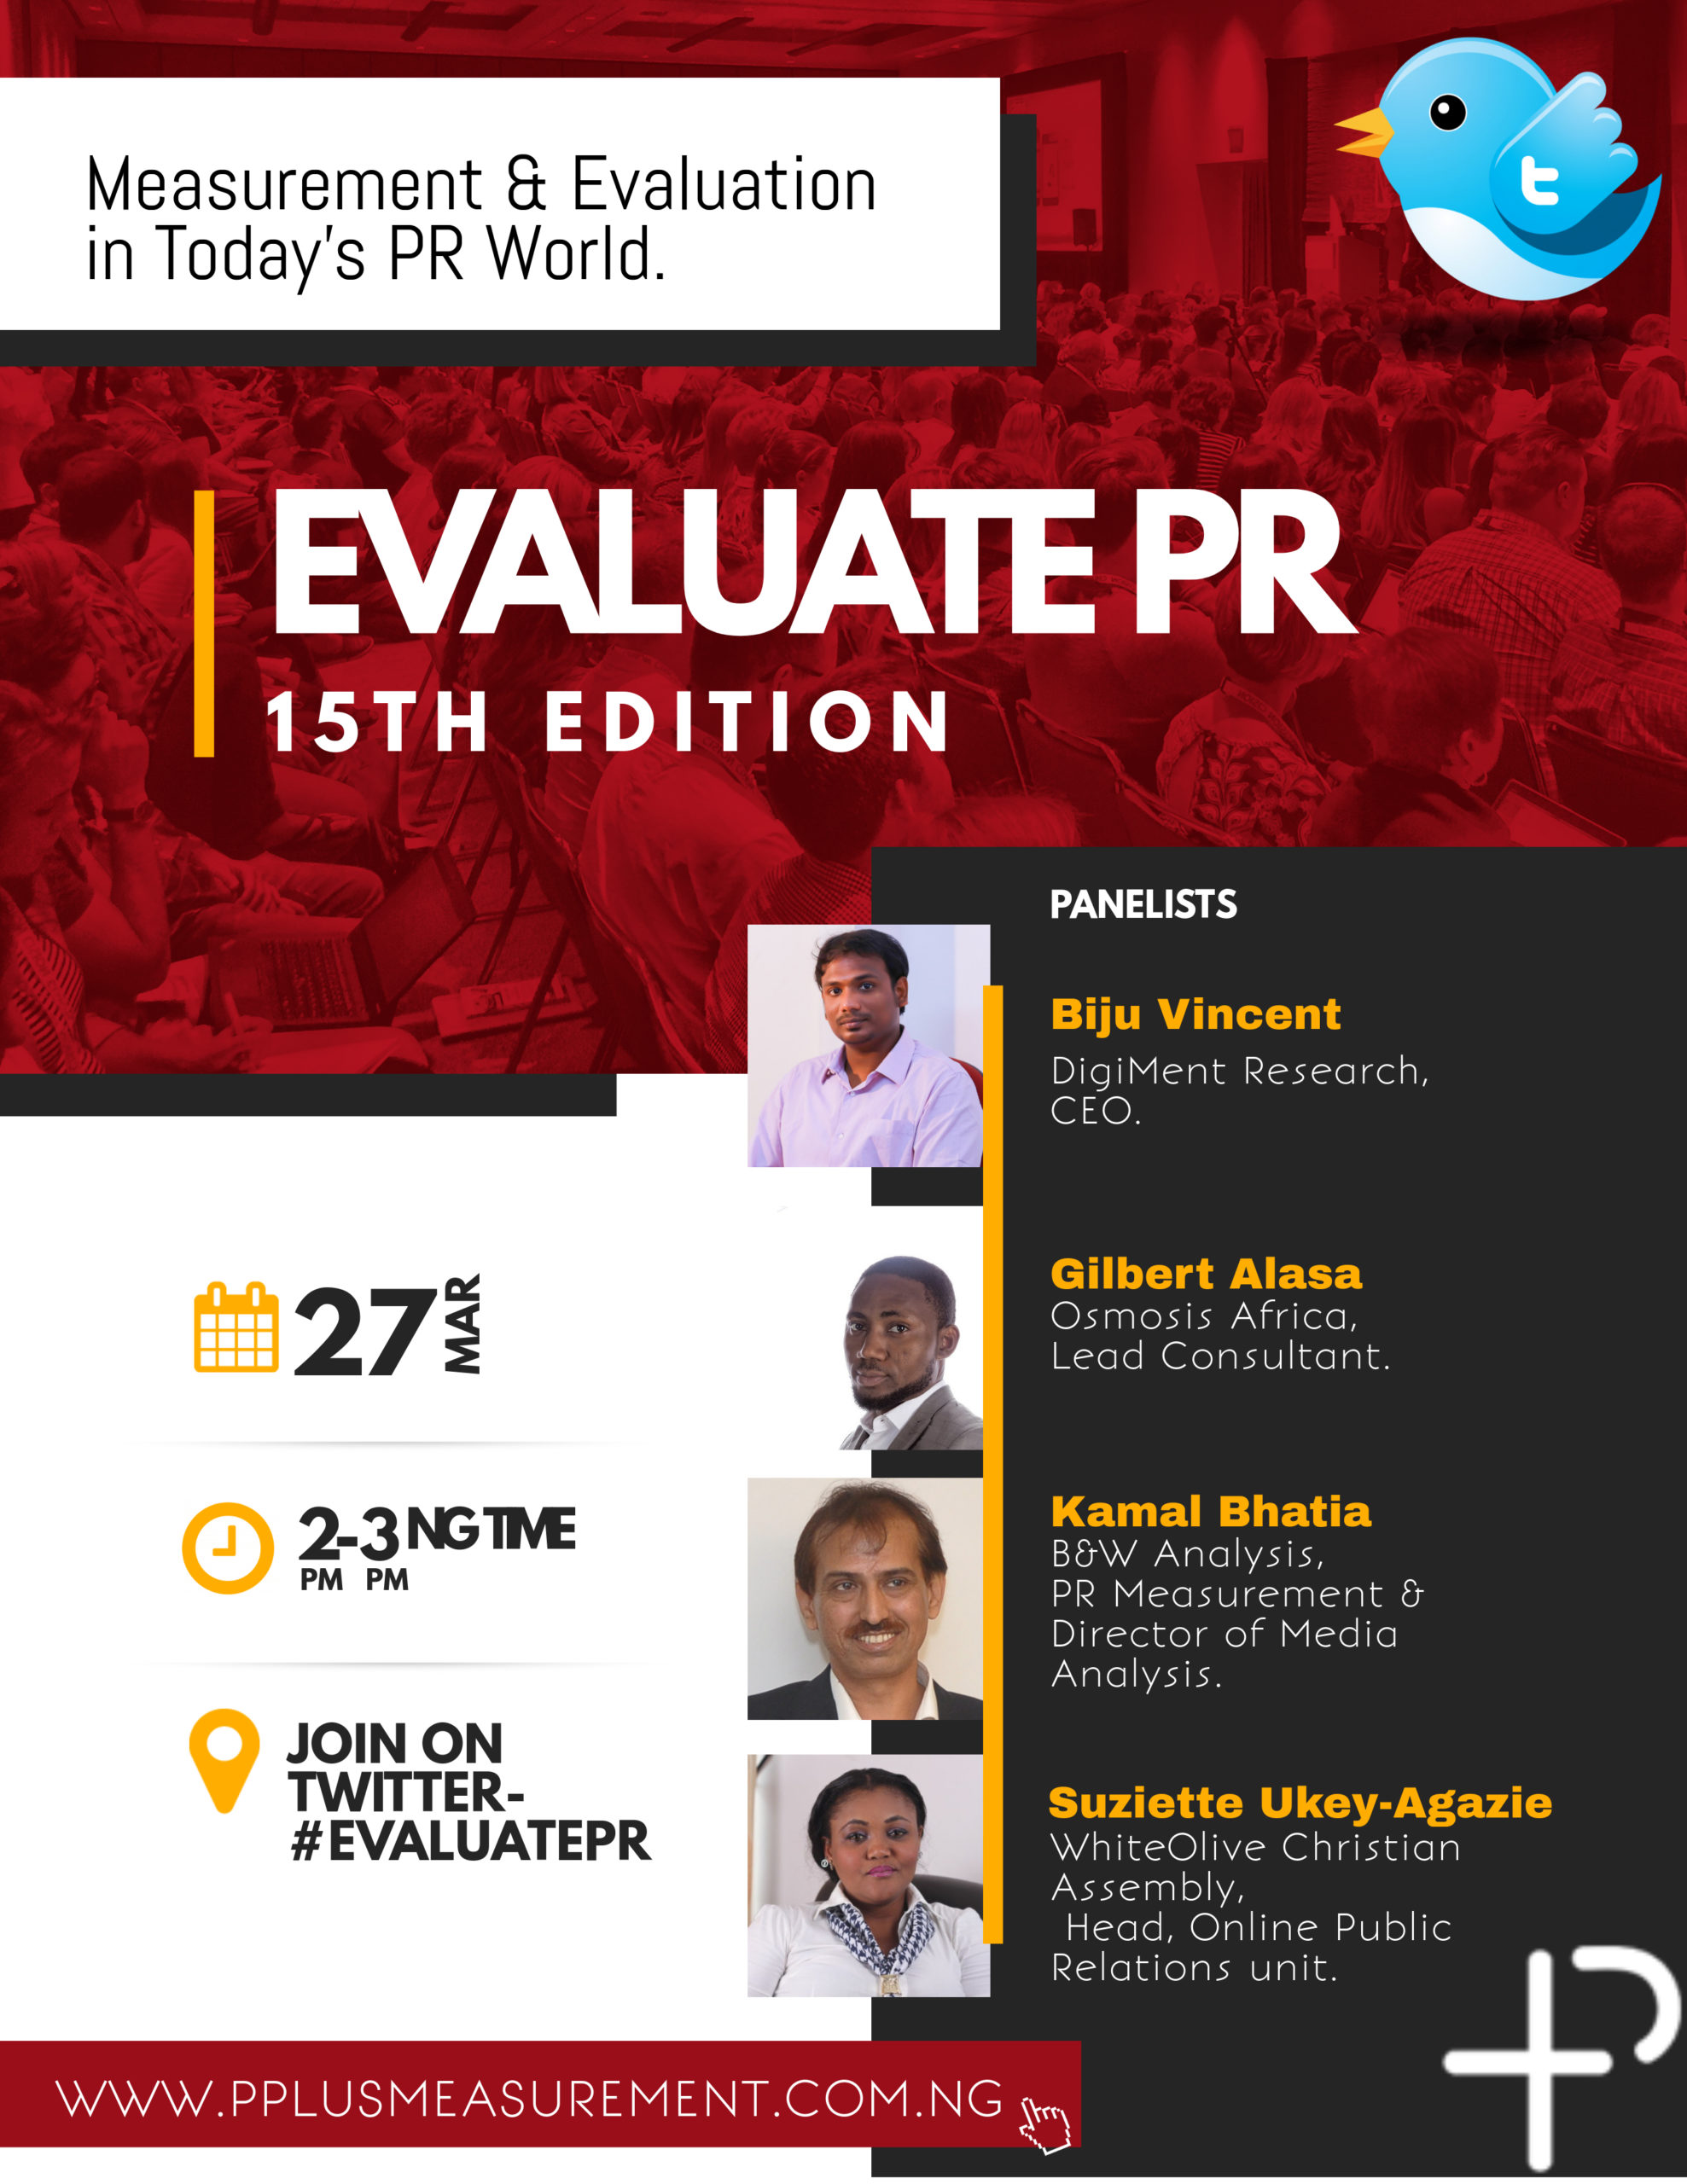 PR And Measurement Experts To Share Thoughts At The 15th Edition Of #EvaluatePR - Brand Spur